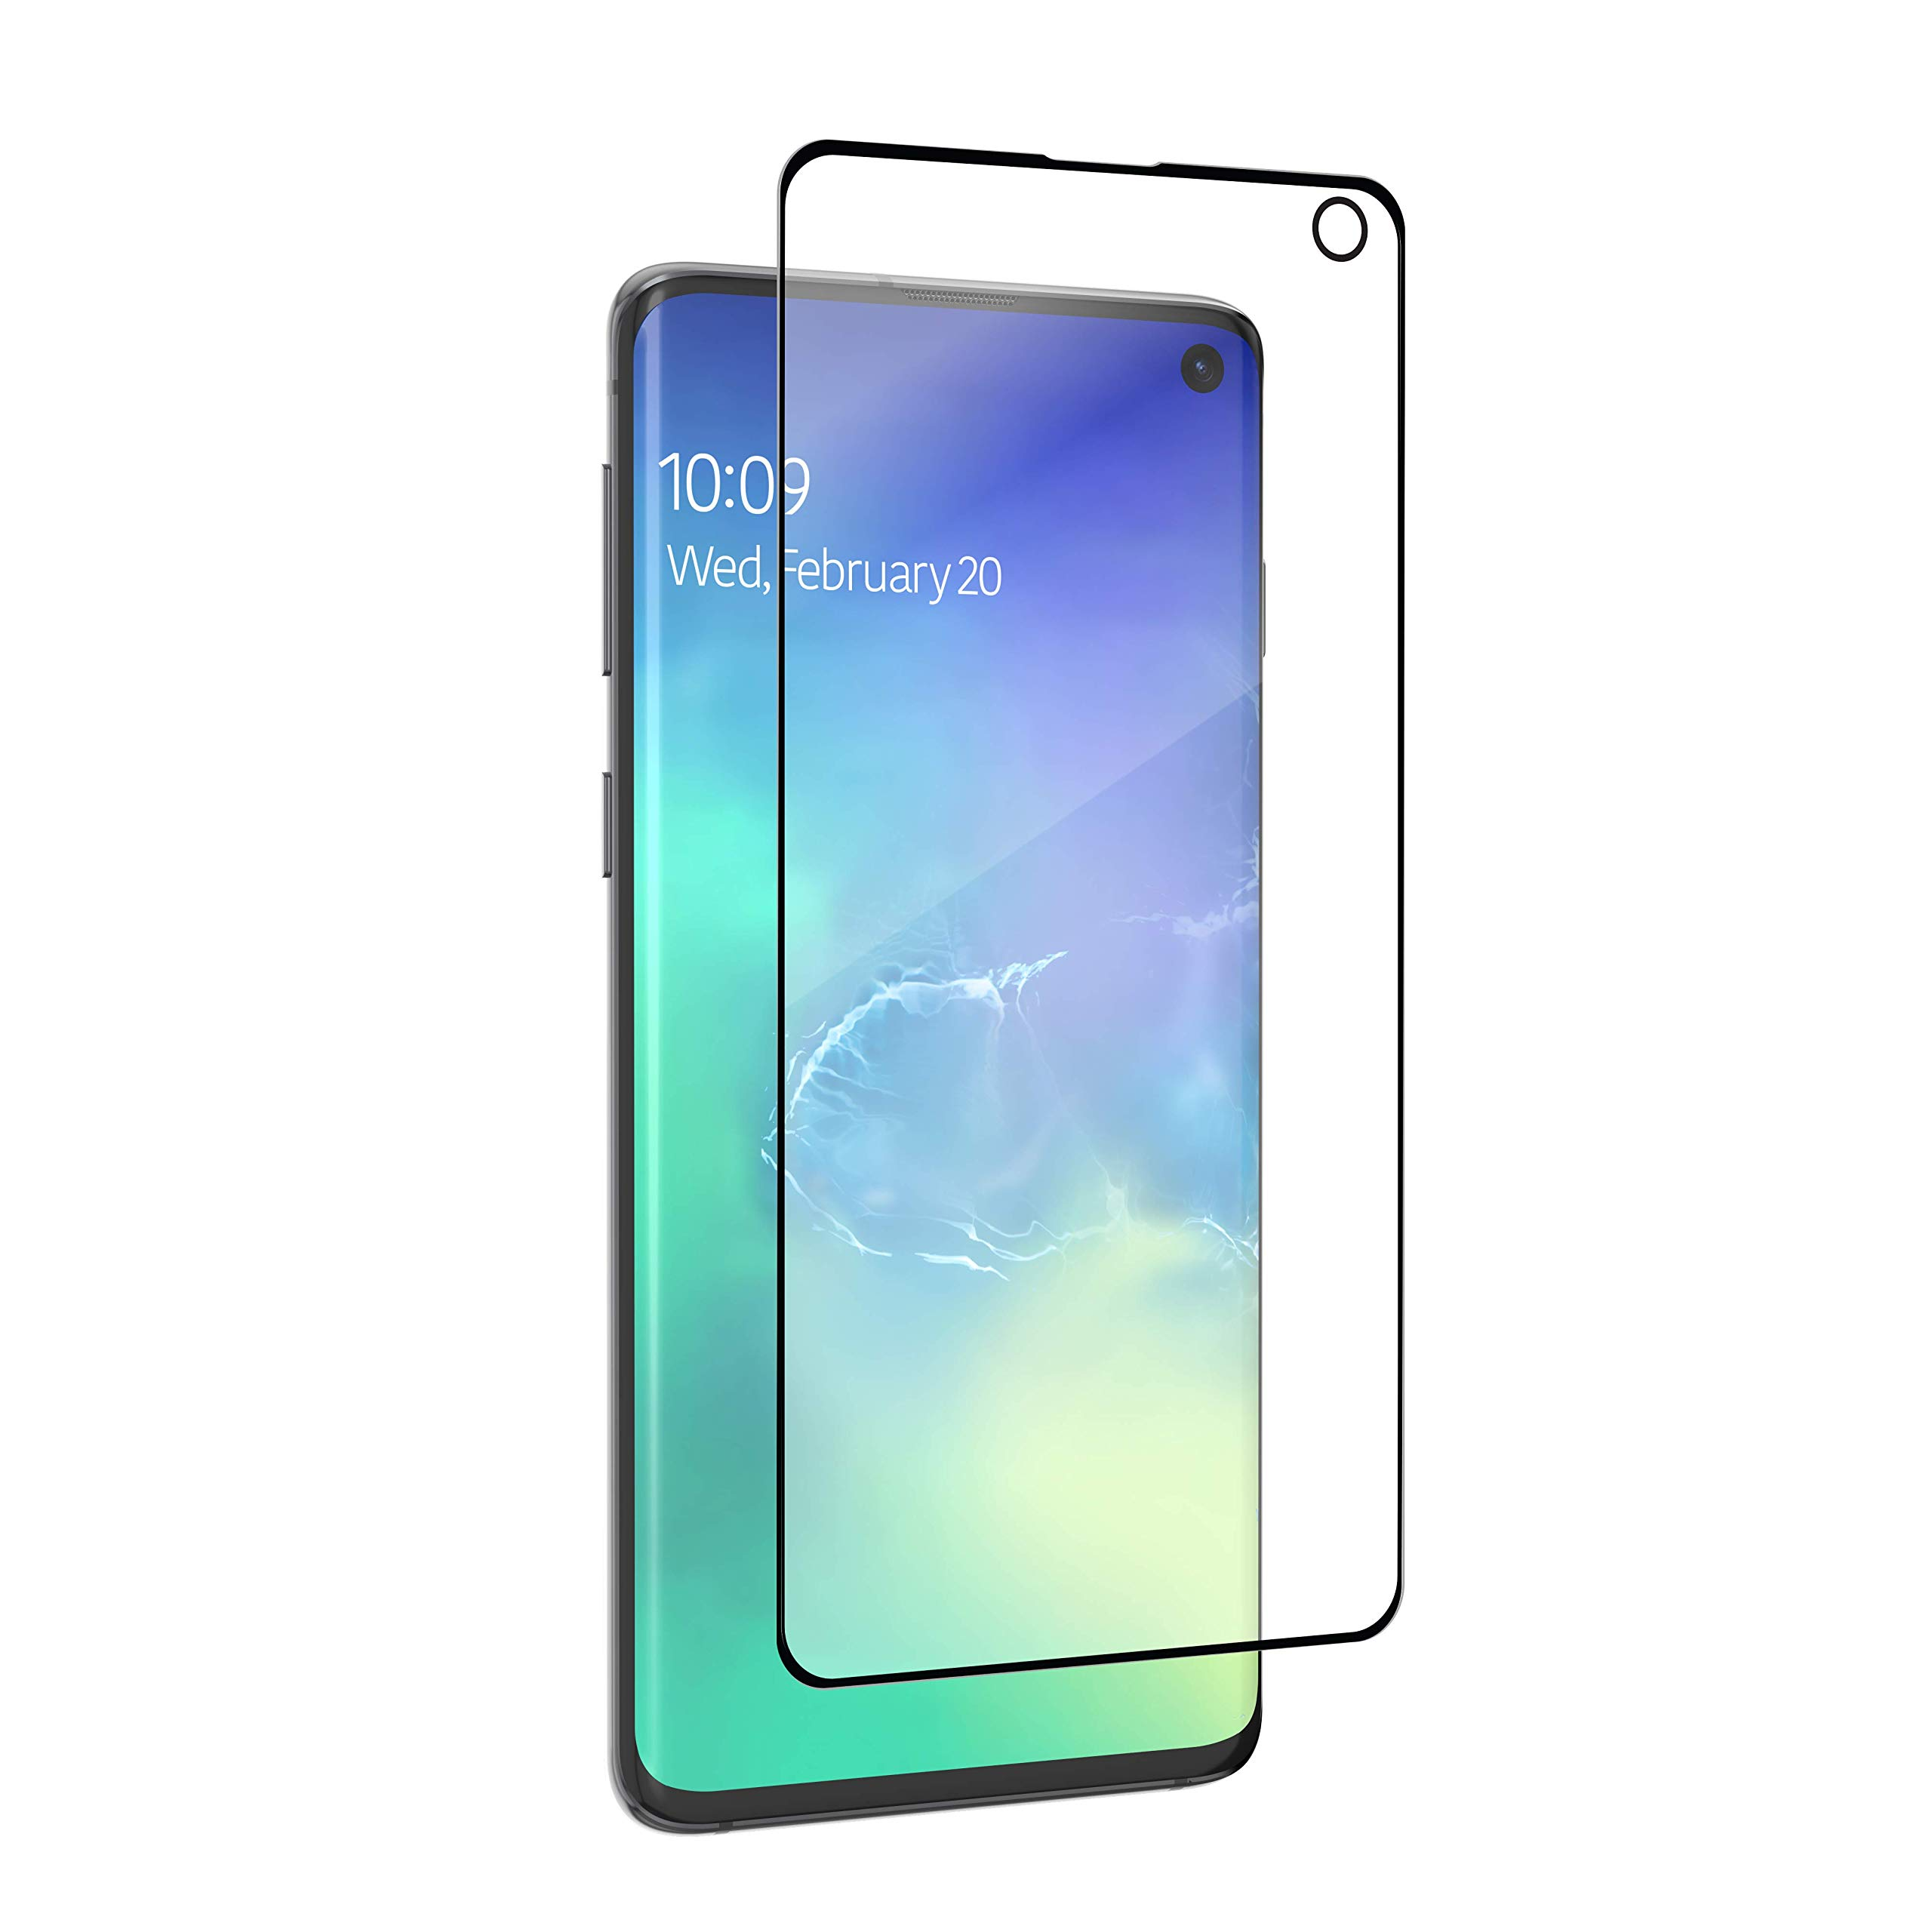 ZAGG Invisbleshield Glass Fusion Visionguard - Extreme Hybrid Glass Protection + Harmful Blue Light Filter - Screen Protector - Made for Samsung Galaxy S10 by ZAGG